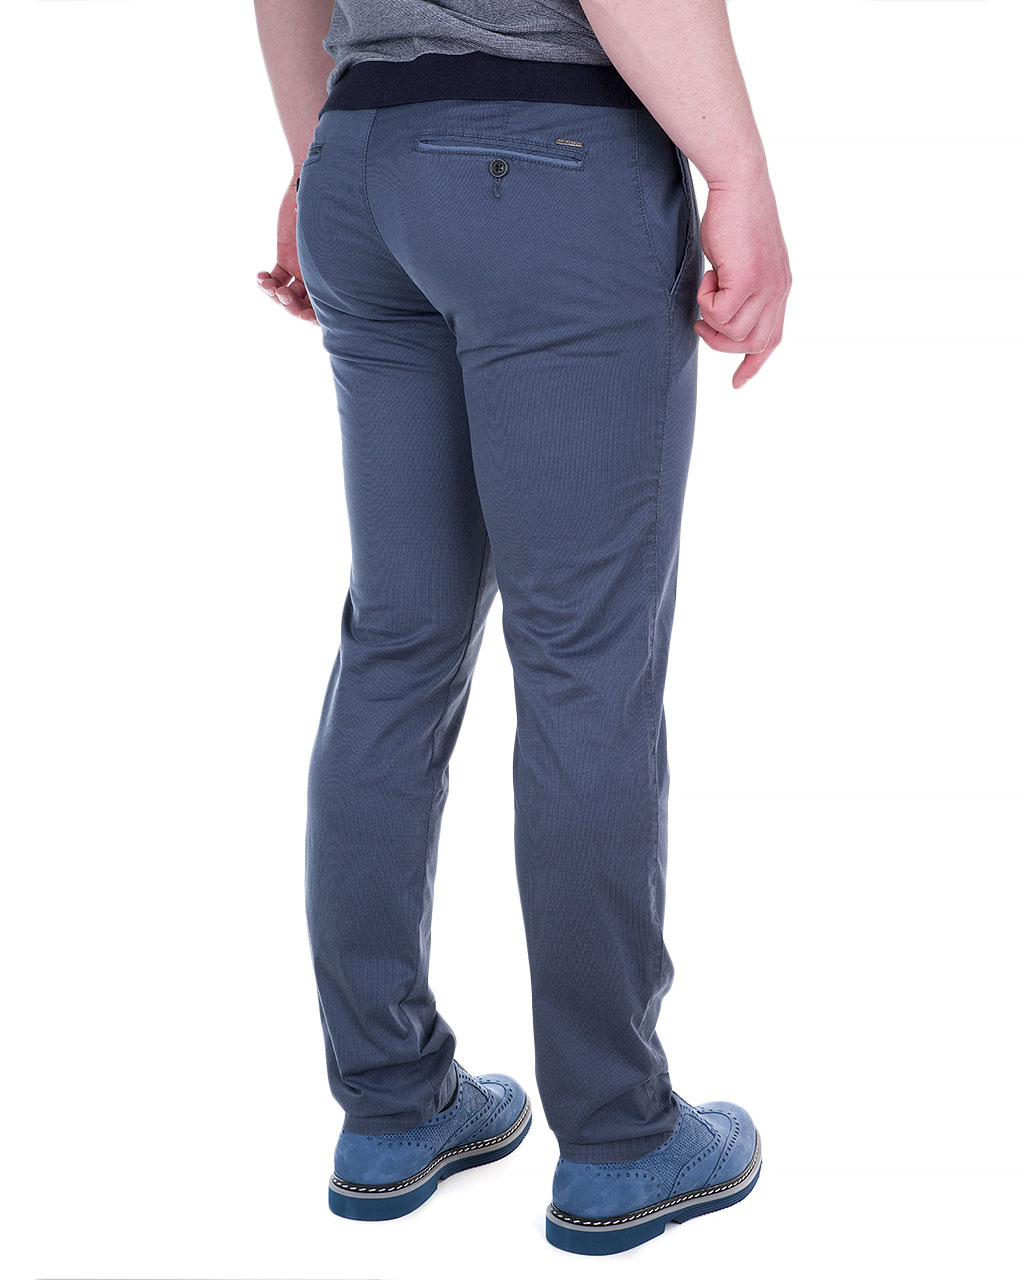 Men's trousers 8352-401-954/9 (3)